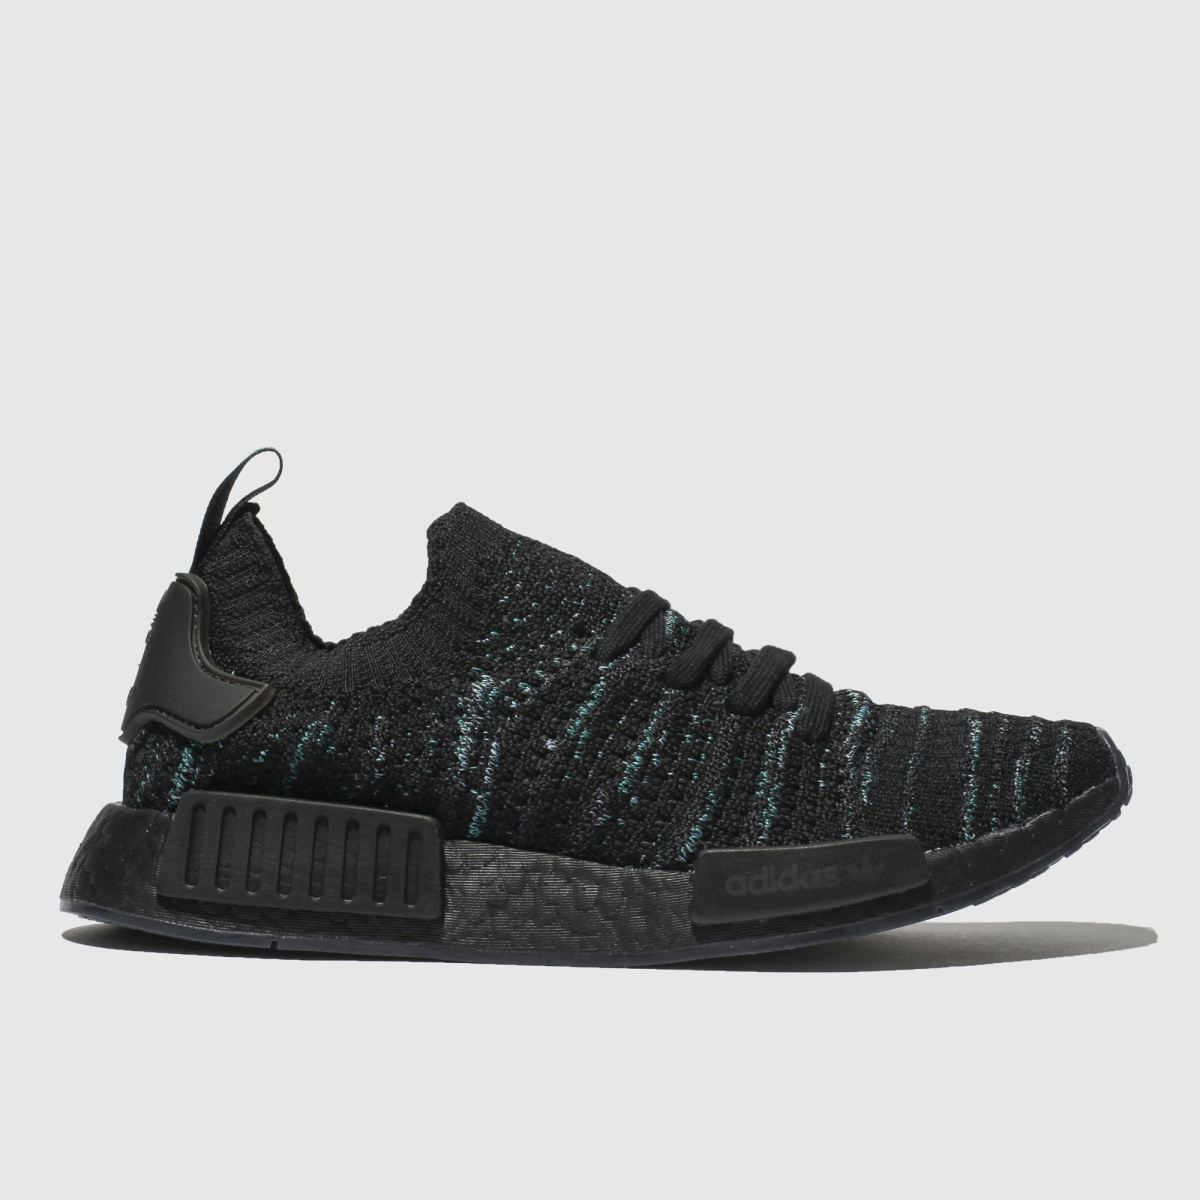 Adidas Black And Blue Nmd_r1 Stlt Parley Trainers